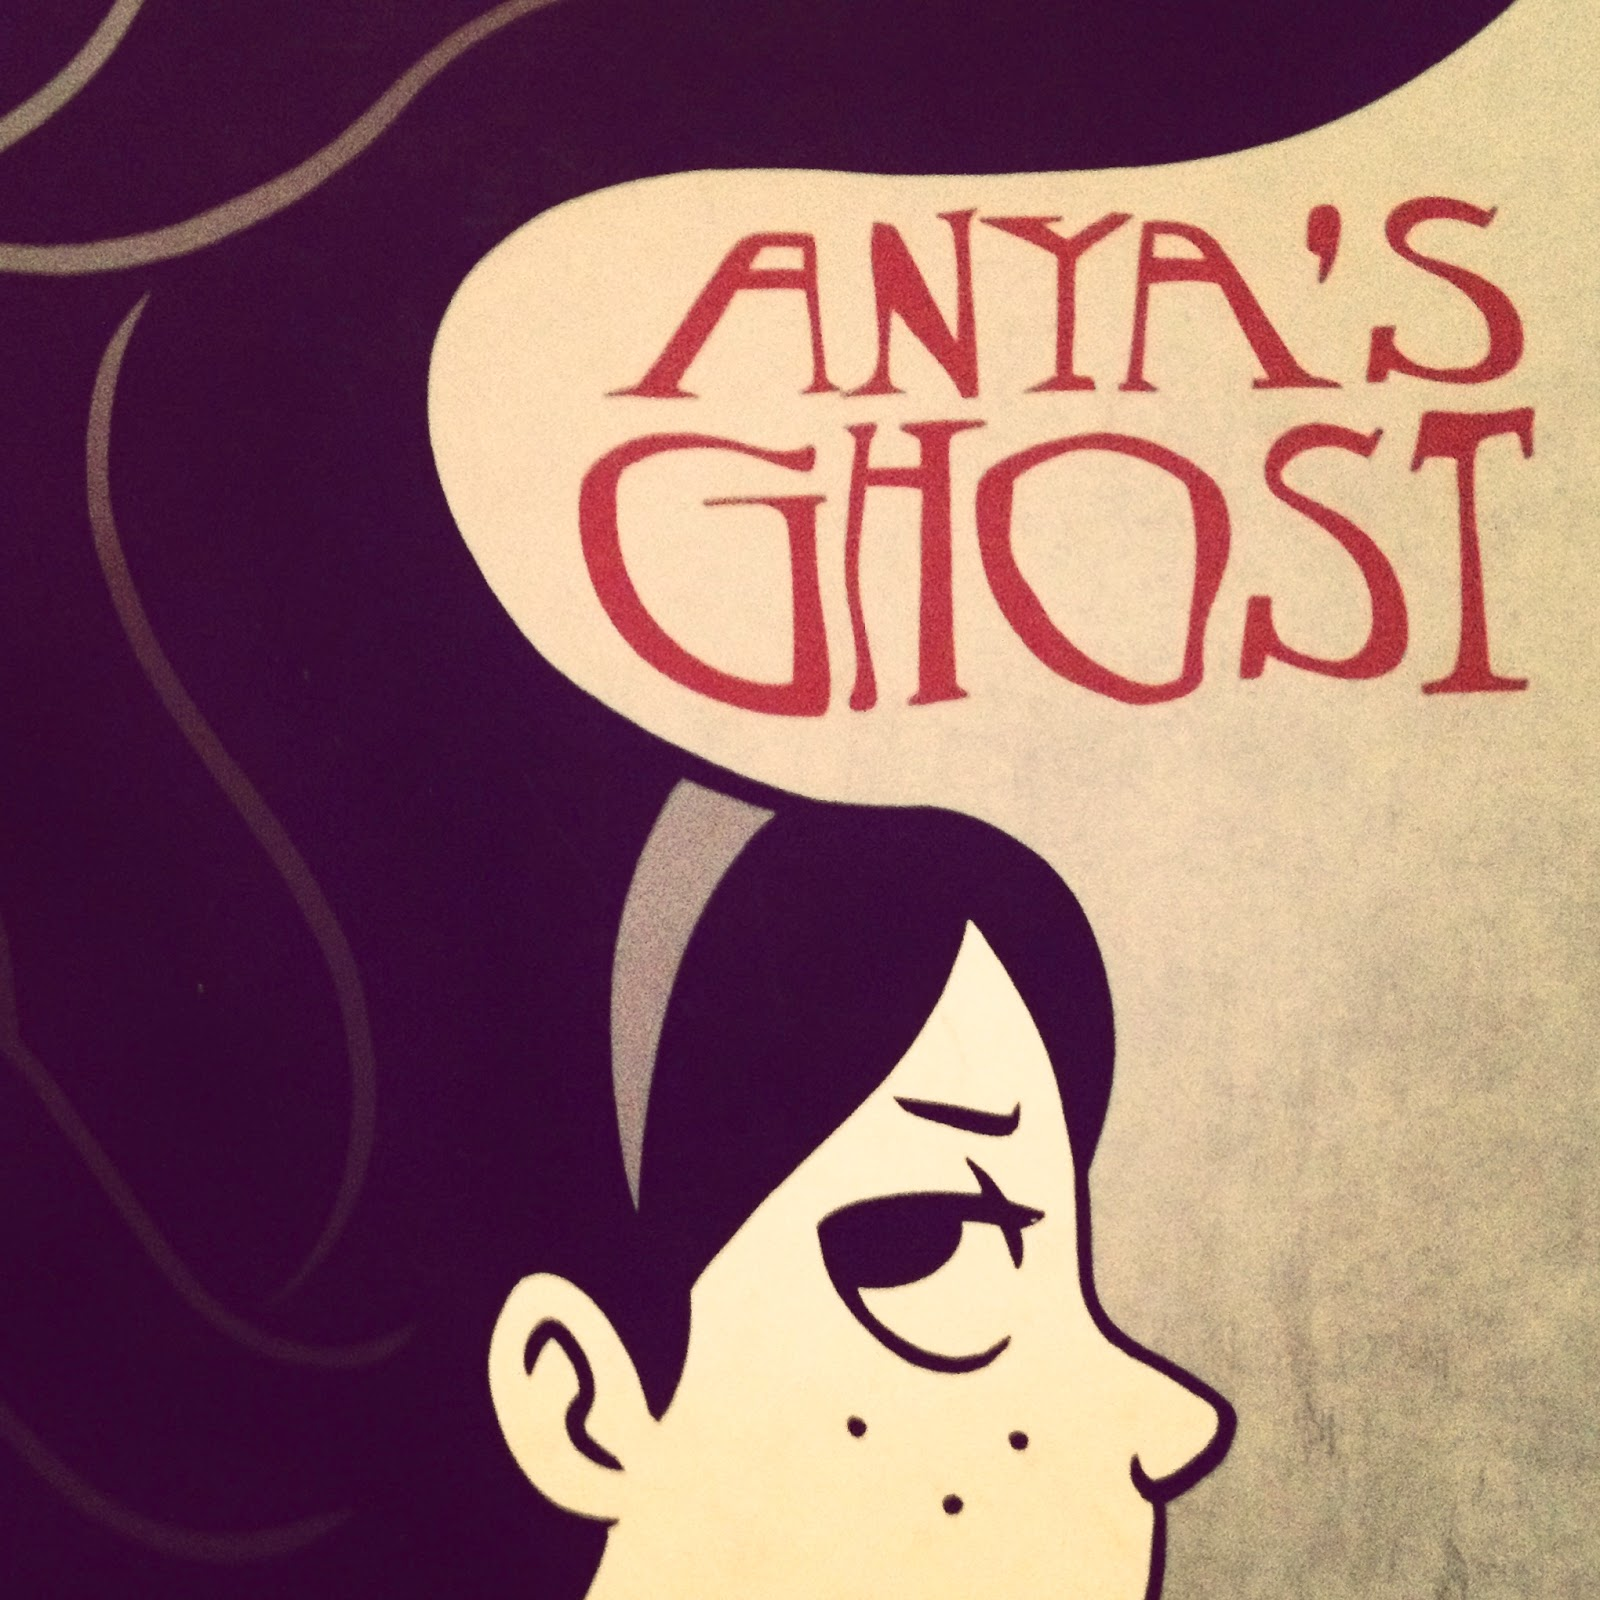 Anyas Ghost - Book Reviews 2014 | Crappy Candle